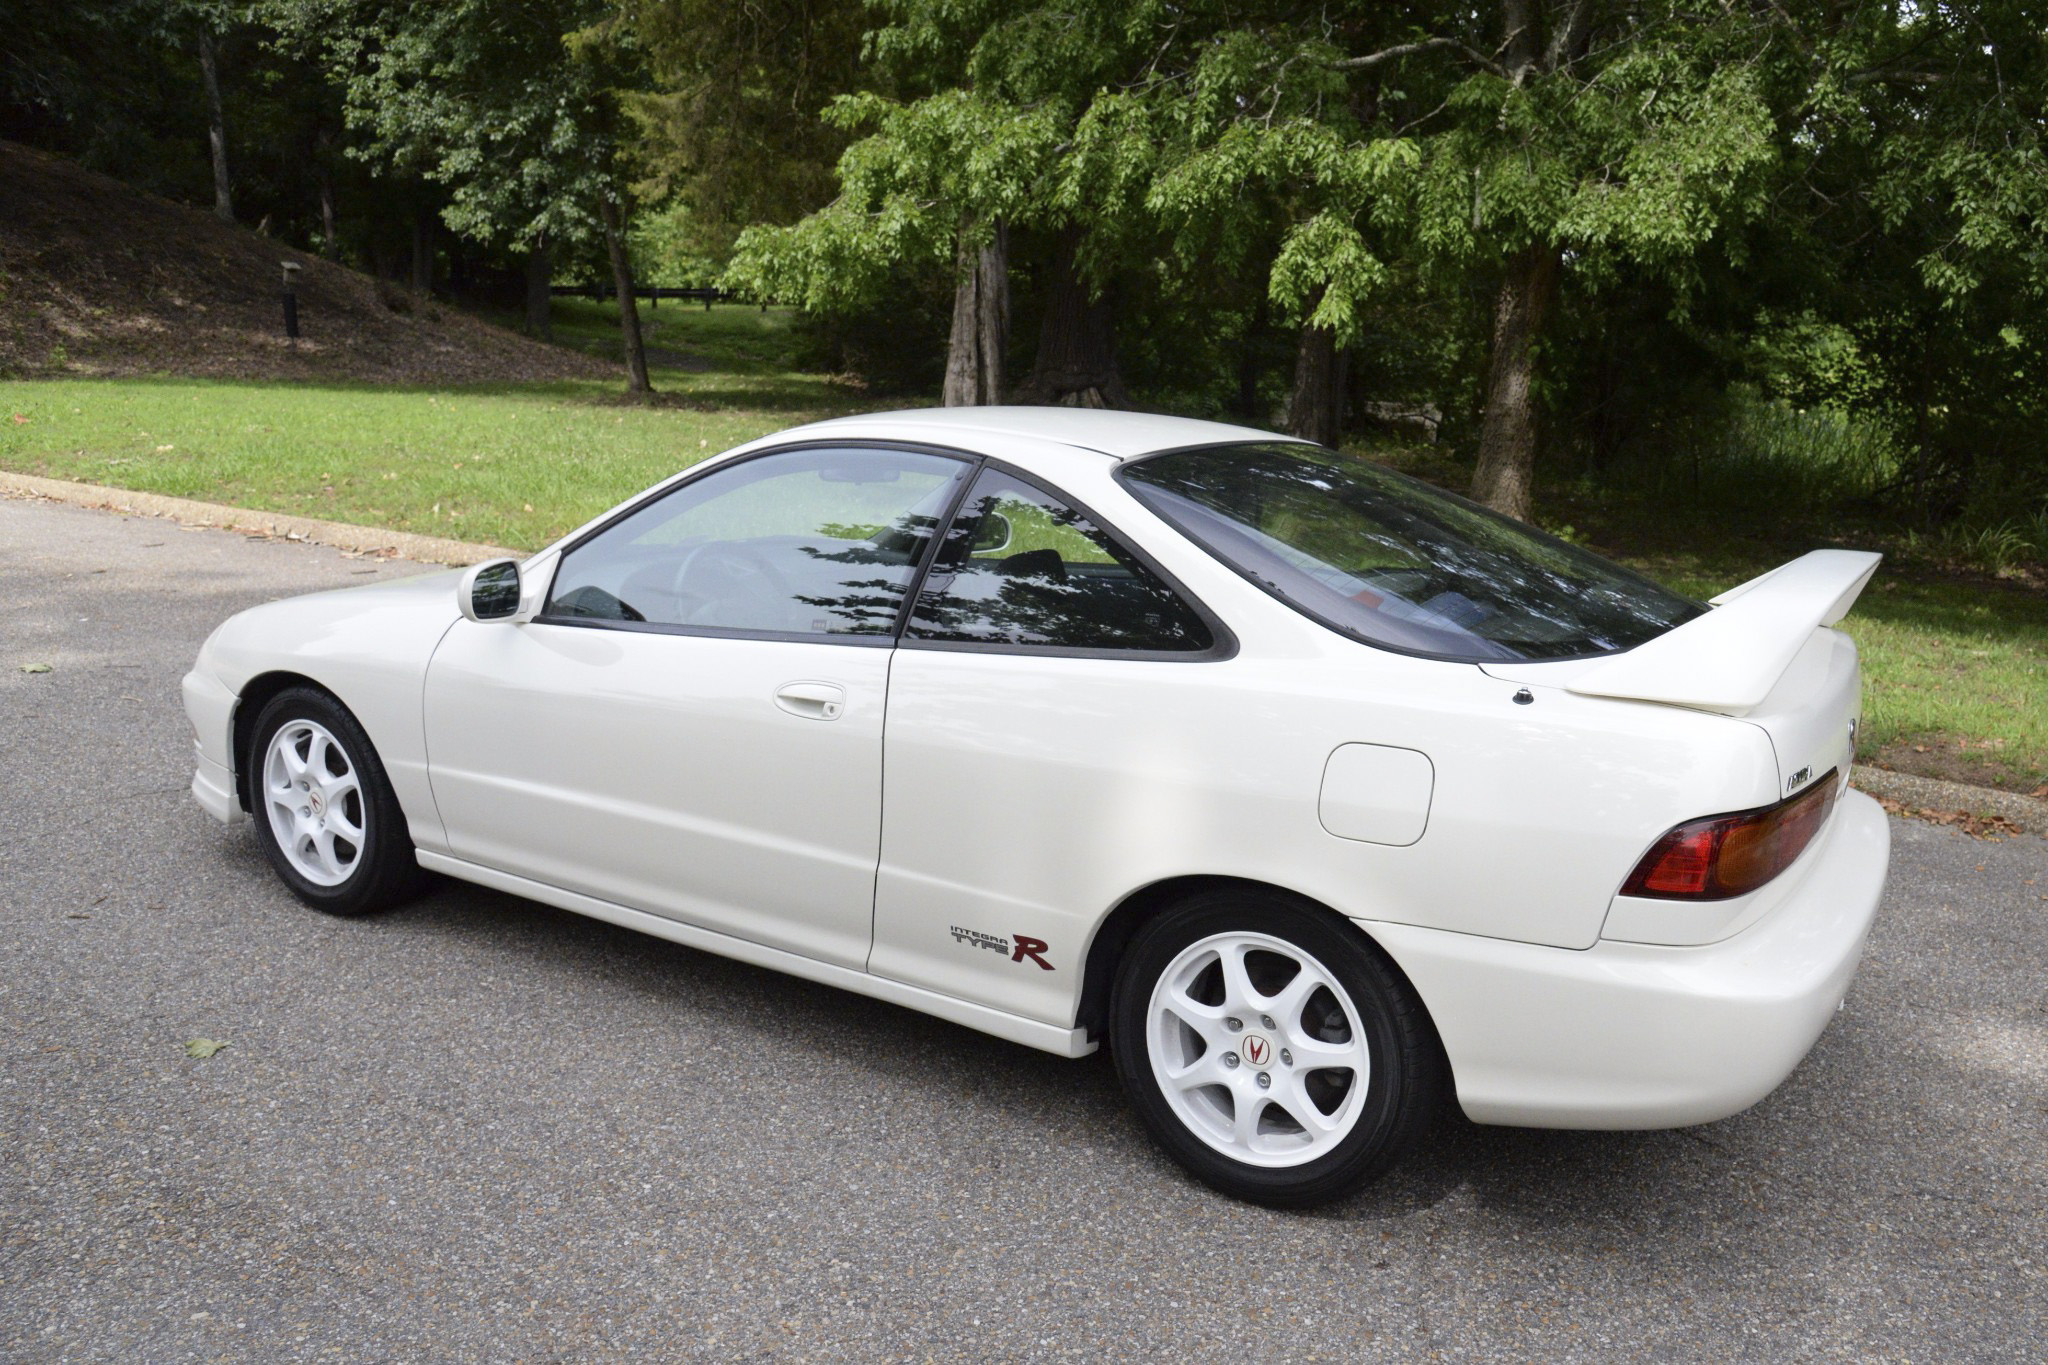 Just Listed: 41,000-Mile 1997 Acura Integra Type R